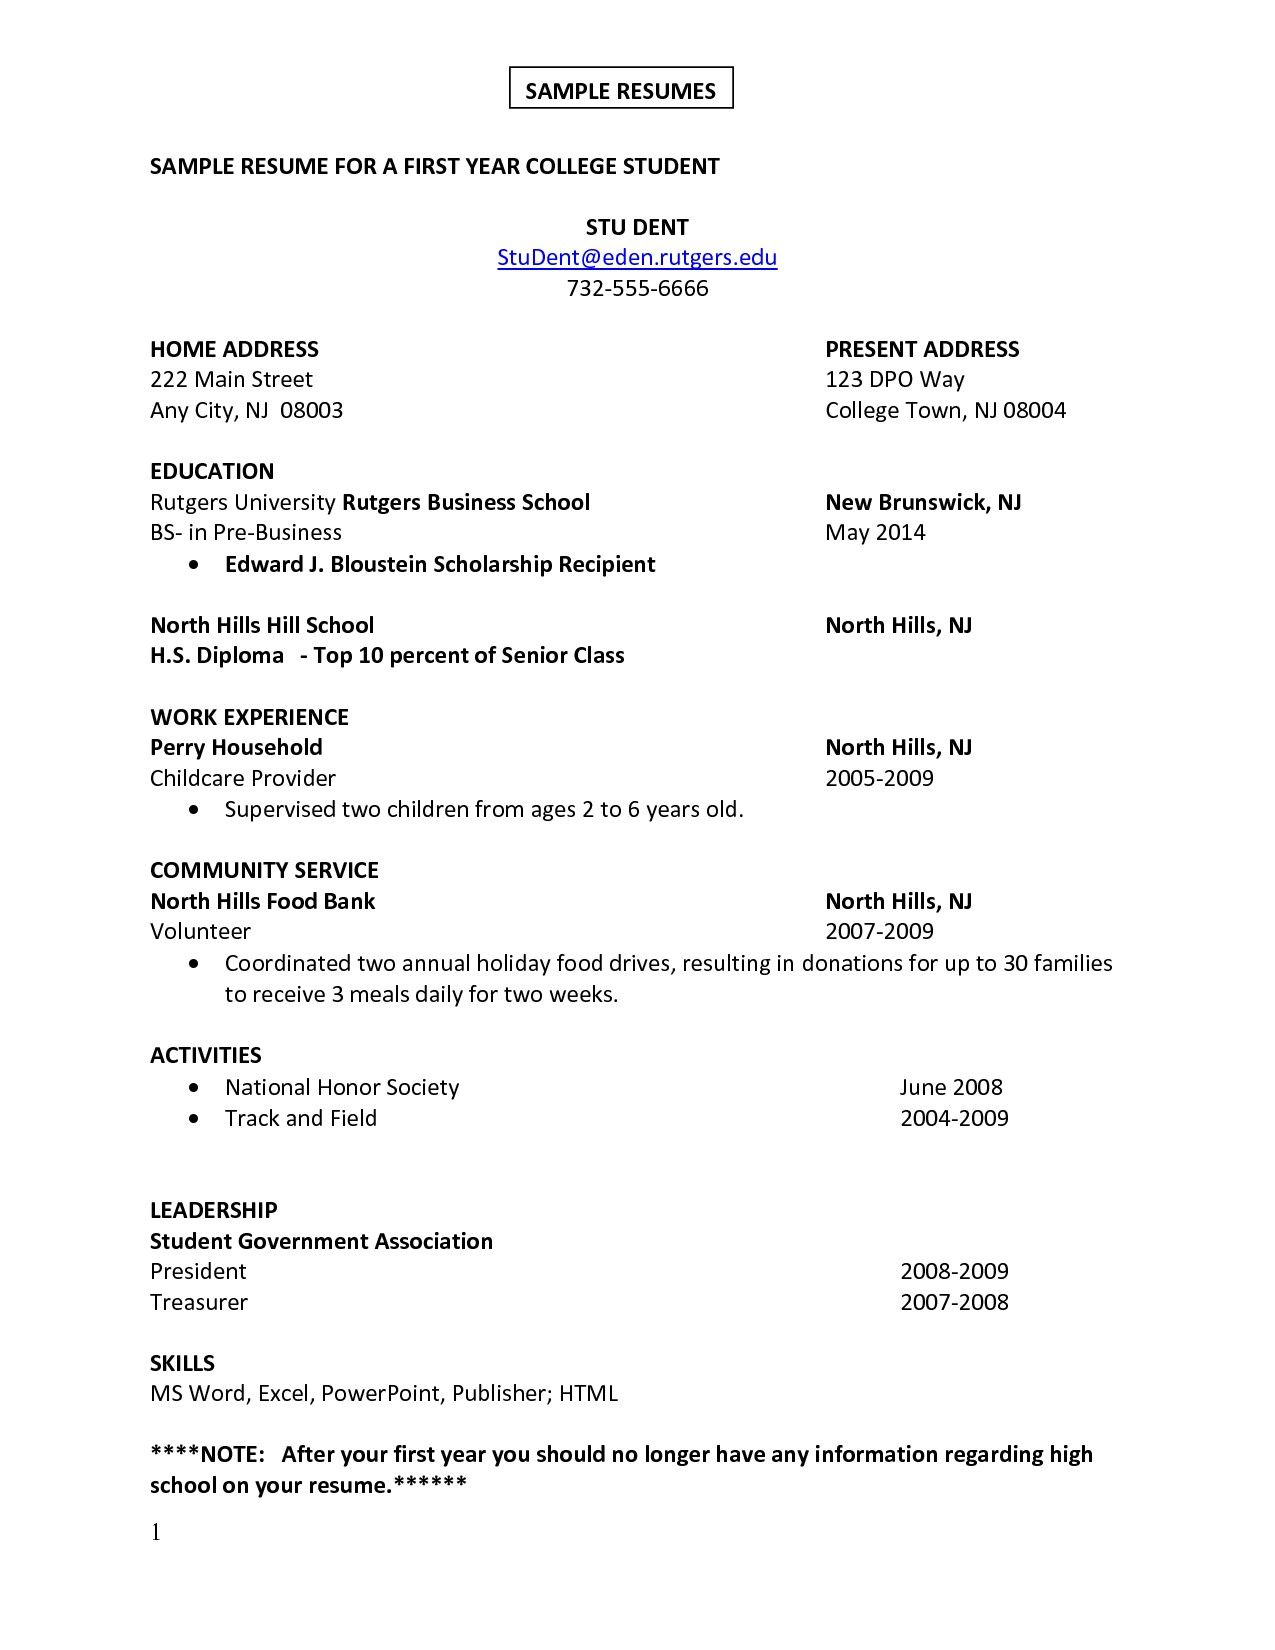 first job resume google search resume example of job resume examples · first job resume google search